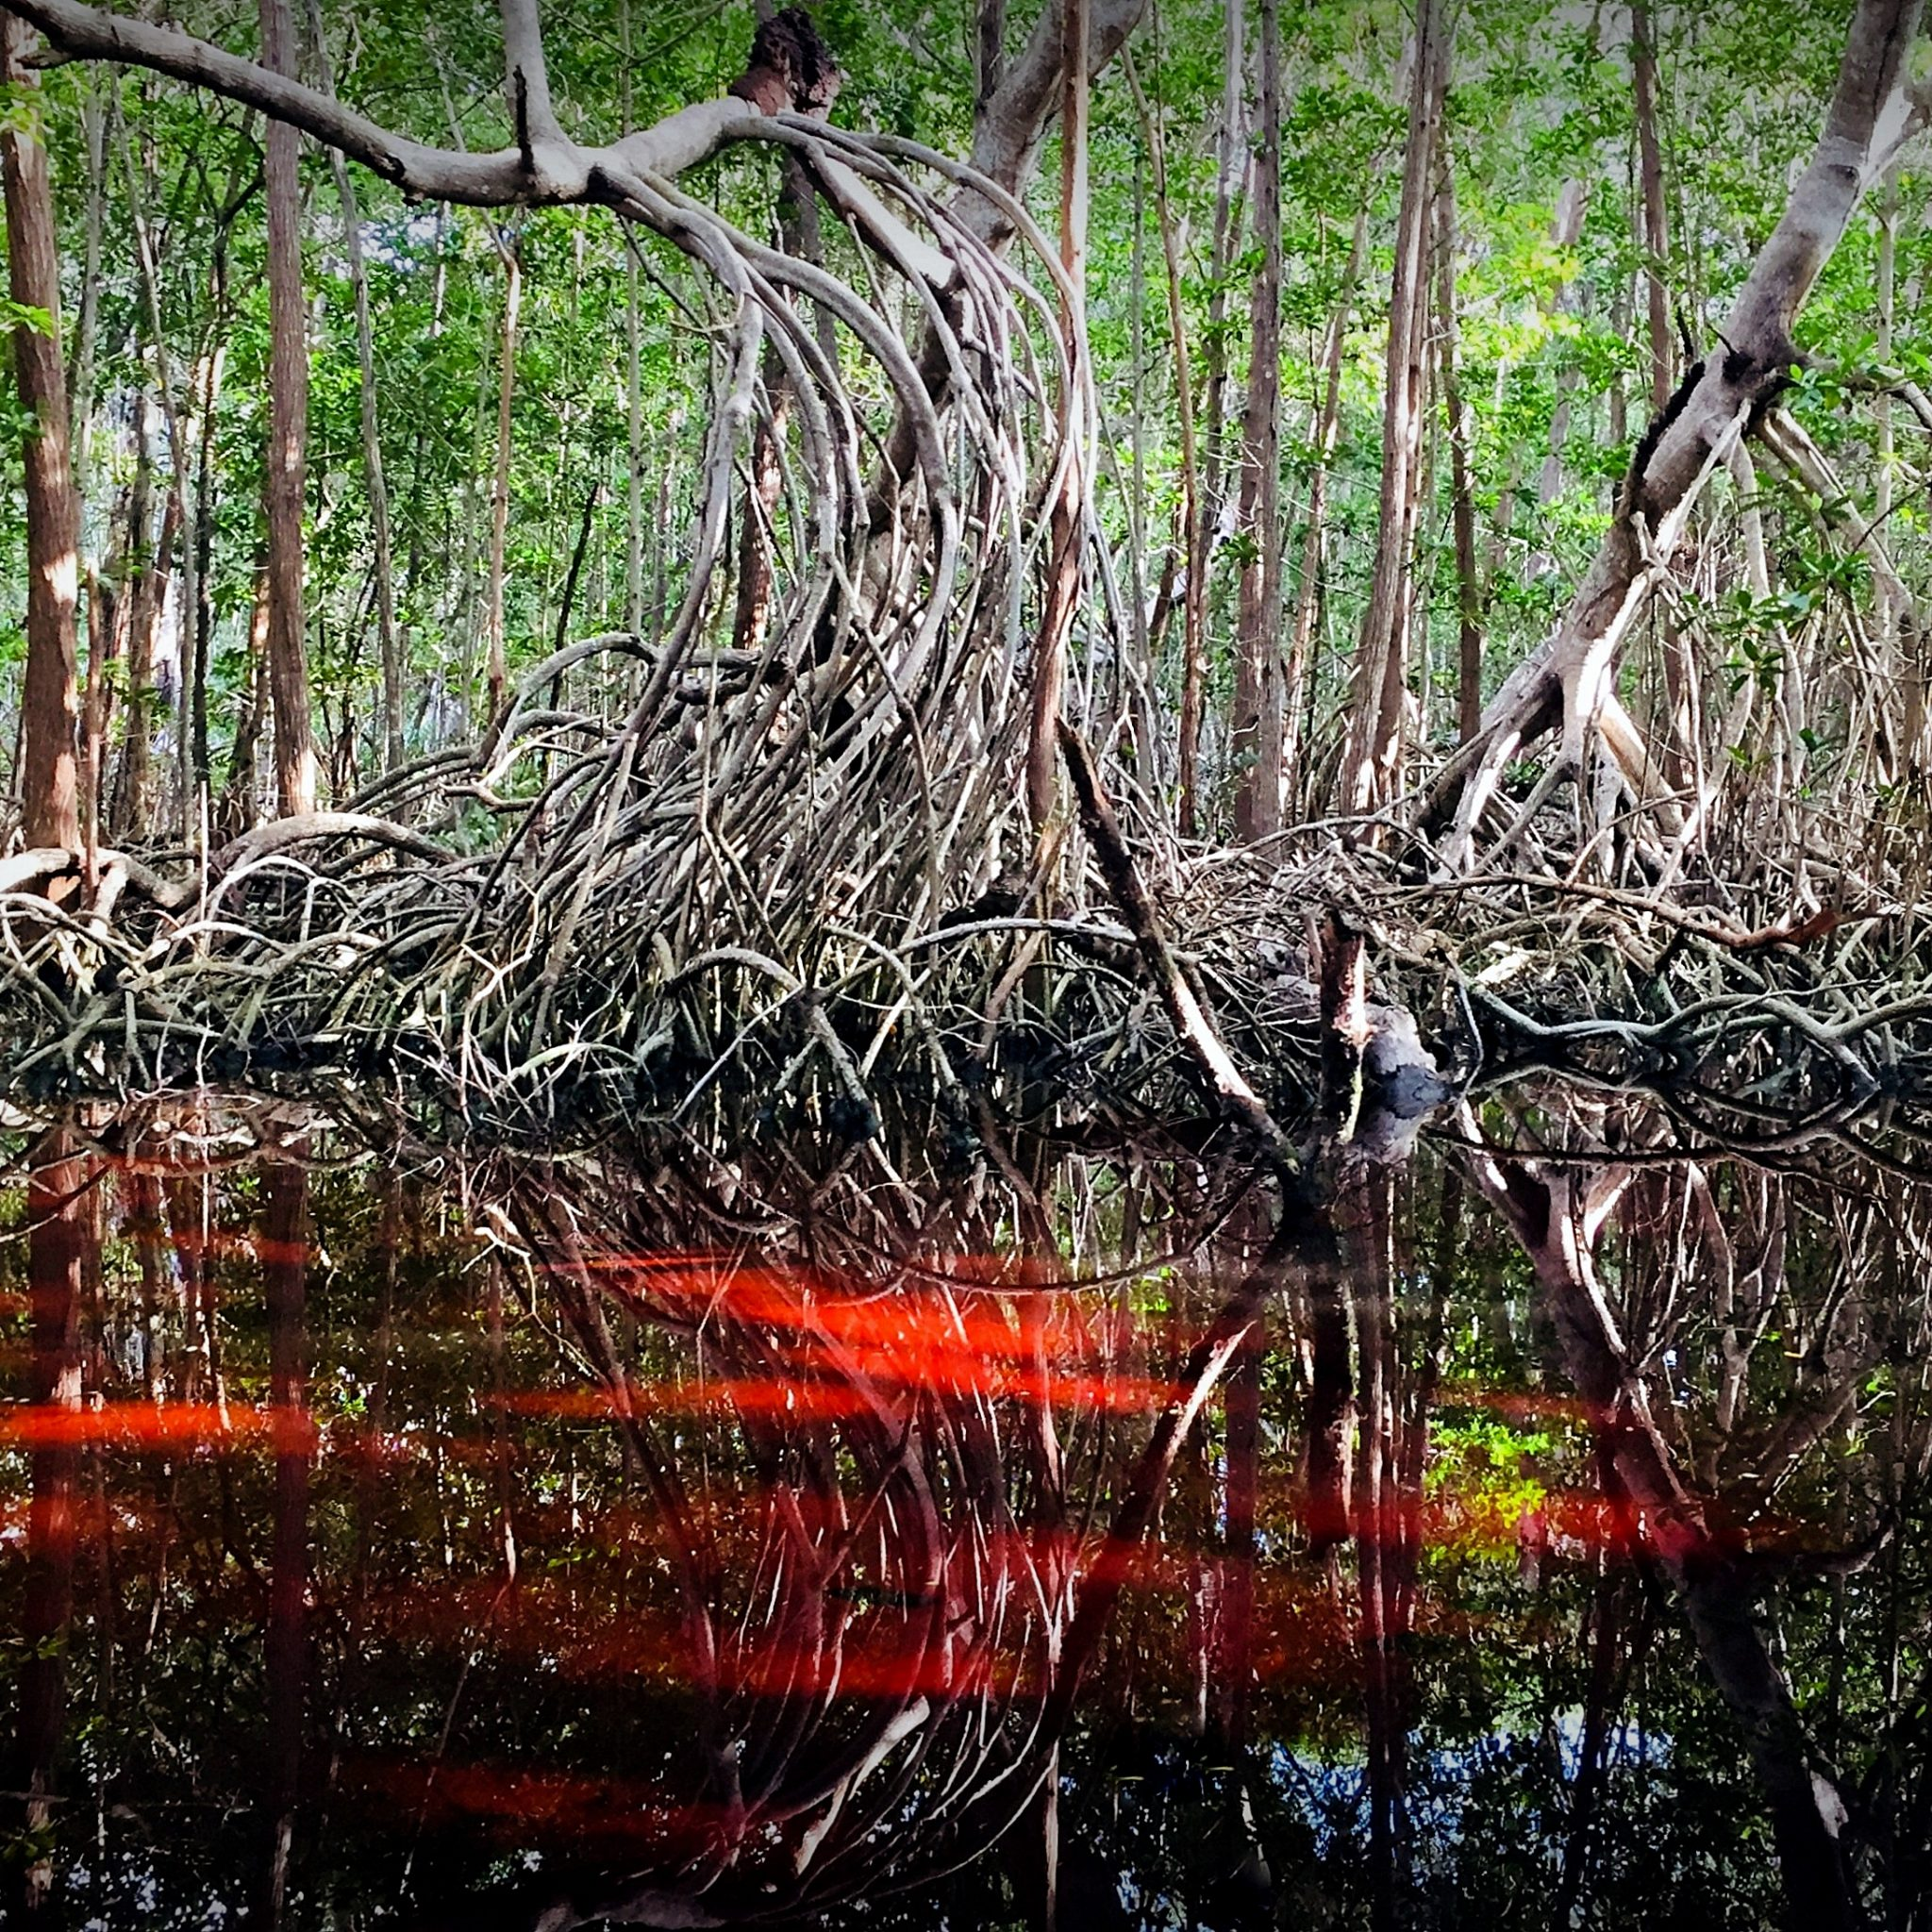 Take a boat ride through the mangroves for an unforgettable wildlife spotting experience.